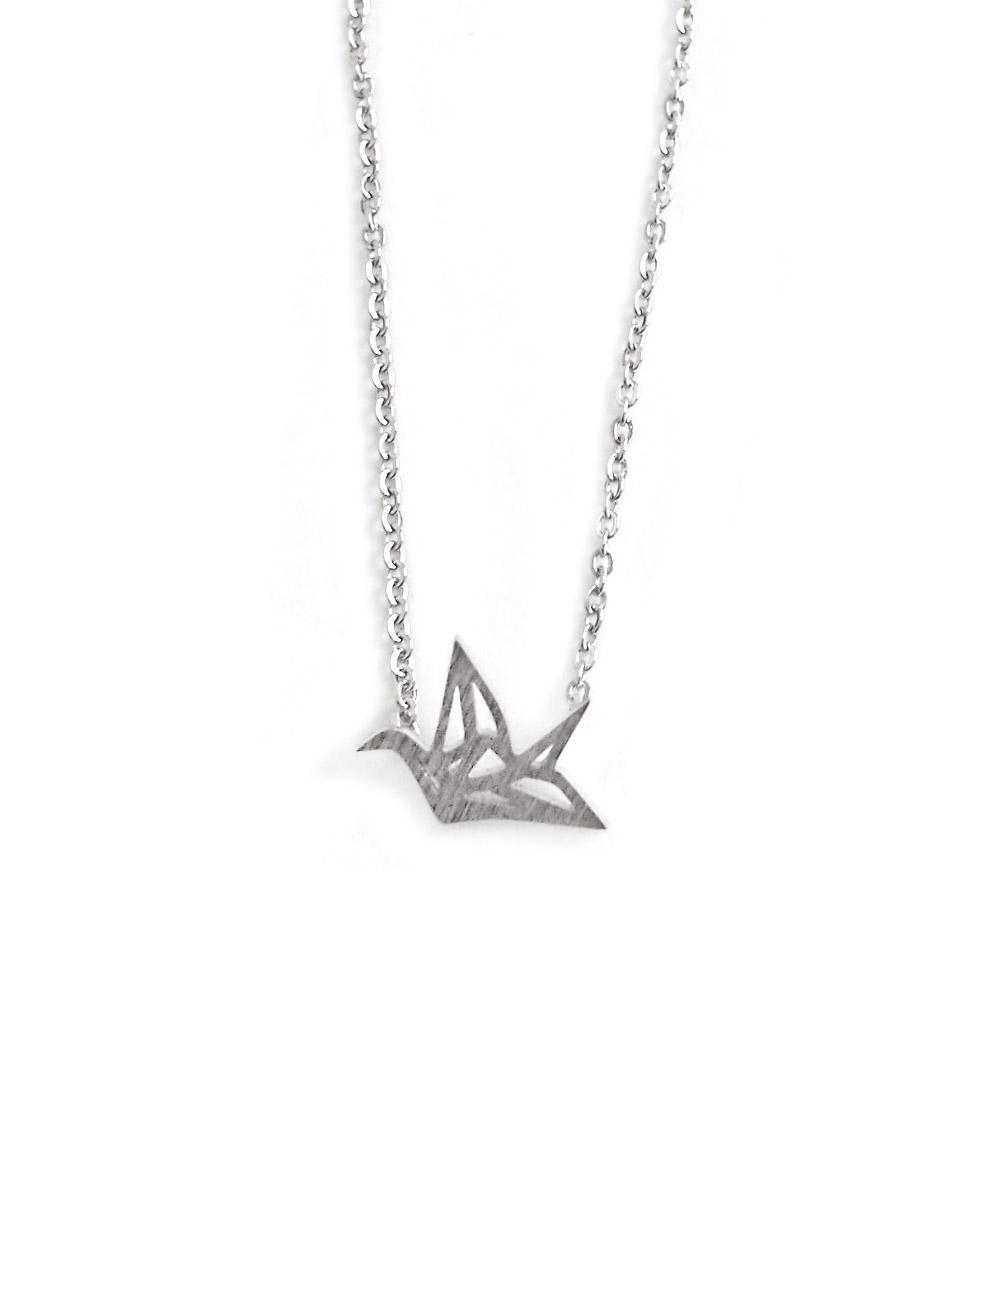 Sterling Silver Origami Crane Necklace | hardtofind. | 1313x985